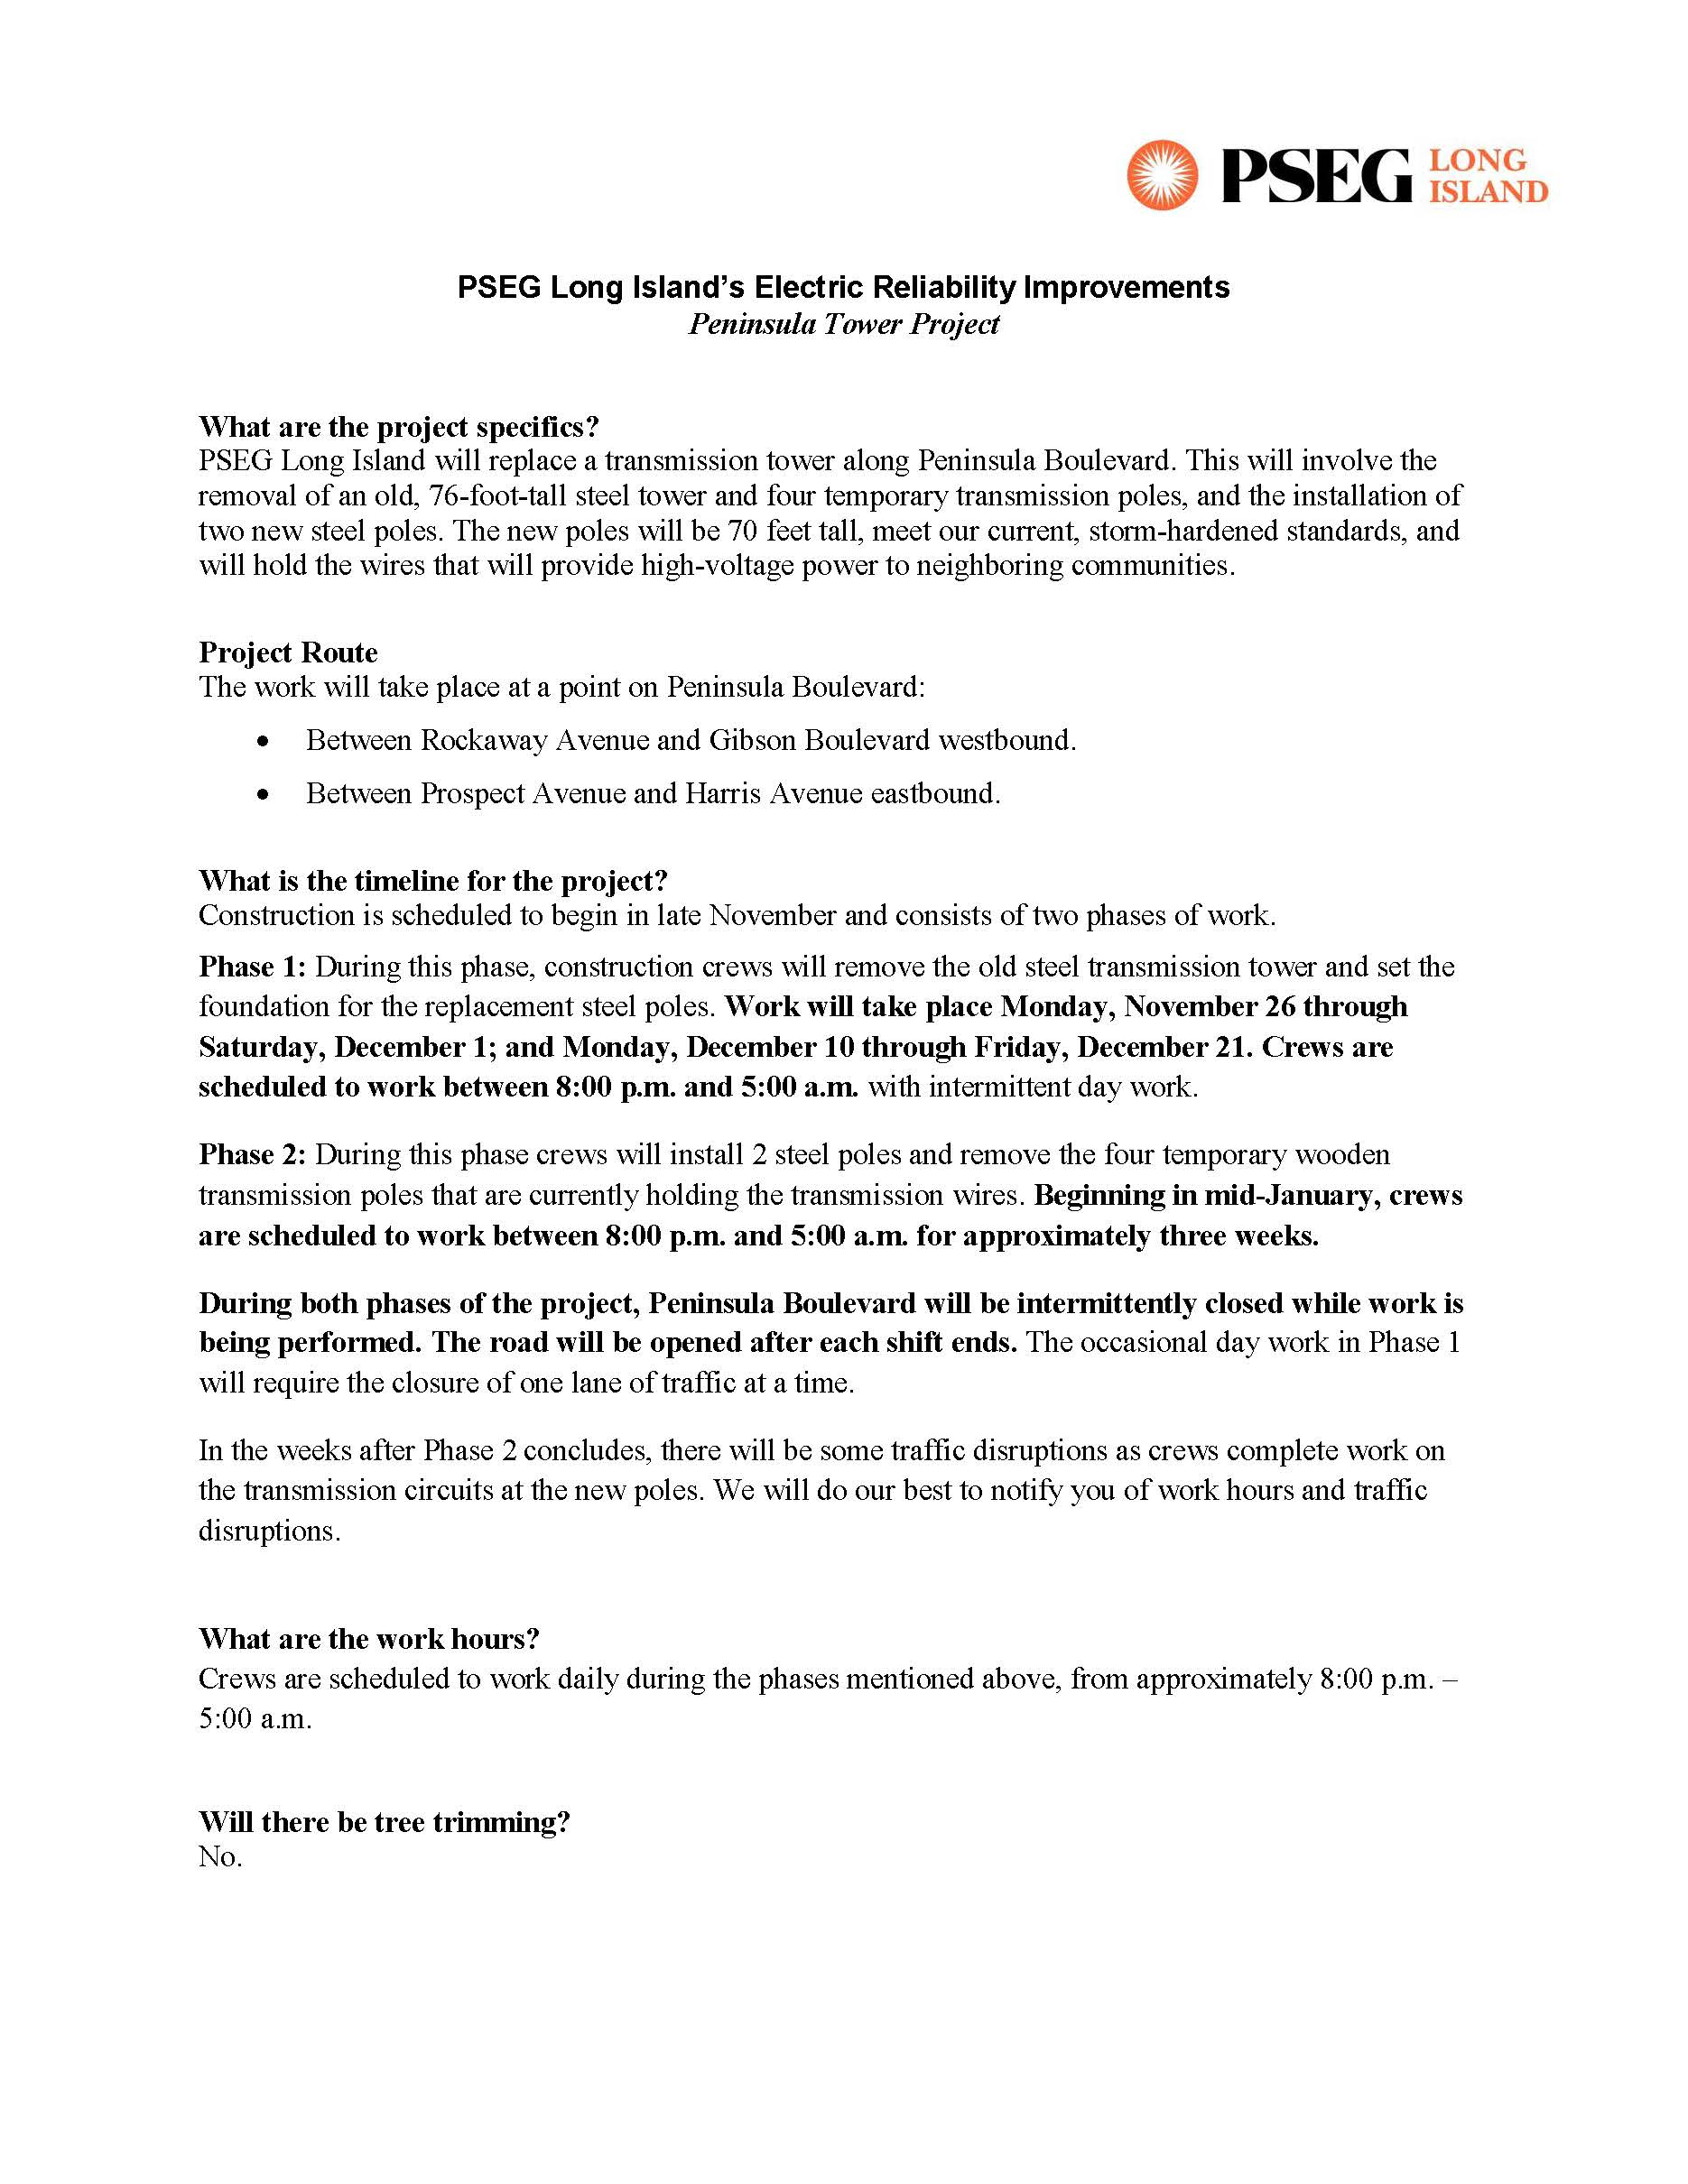 Village Of Valley Stream Good Ideas May Not Have One The Circuit Below Be Fond You Click Above Image For Full Document